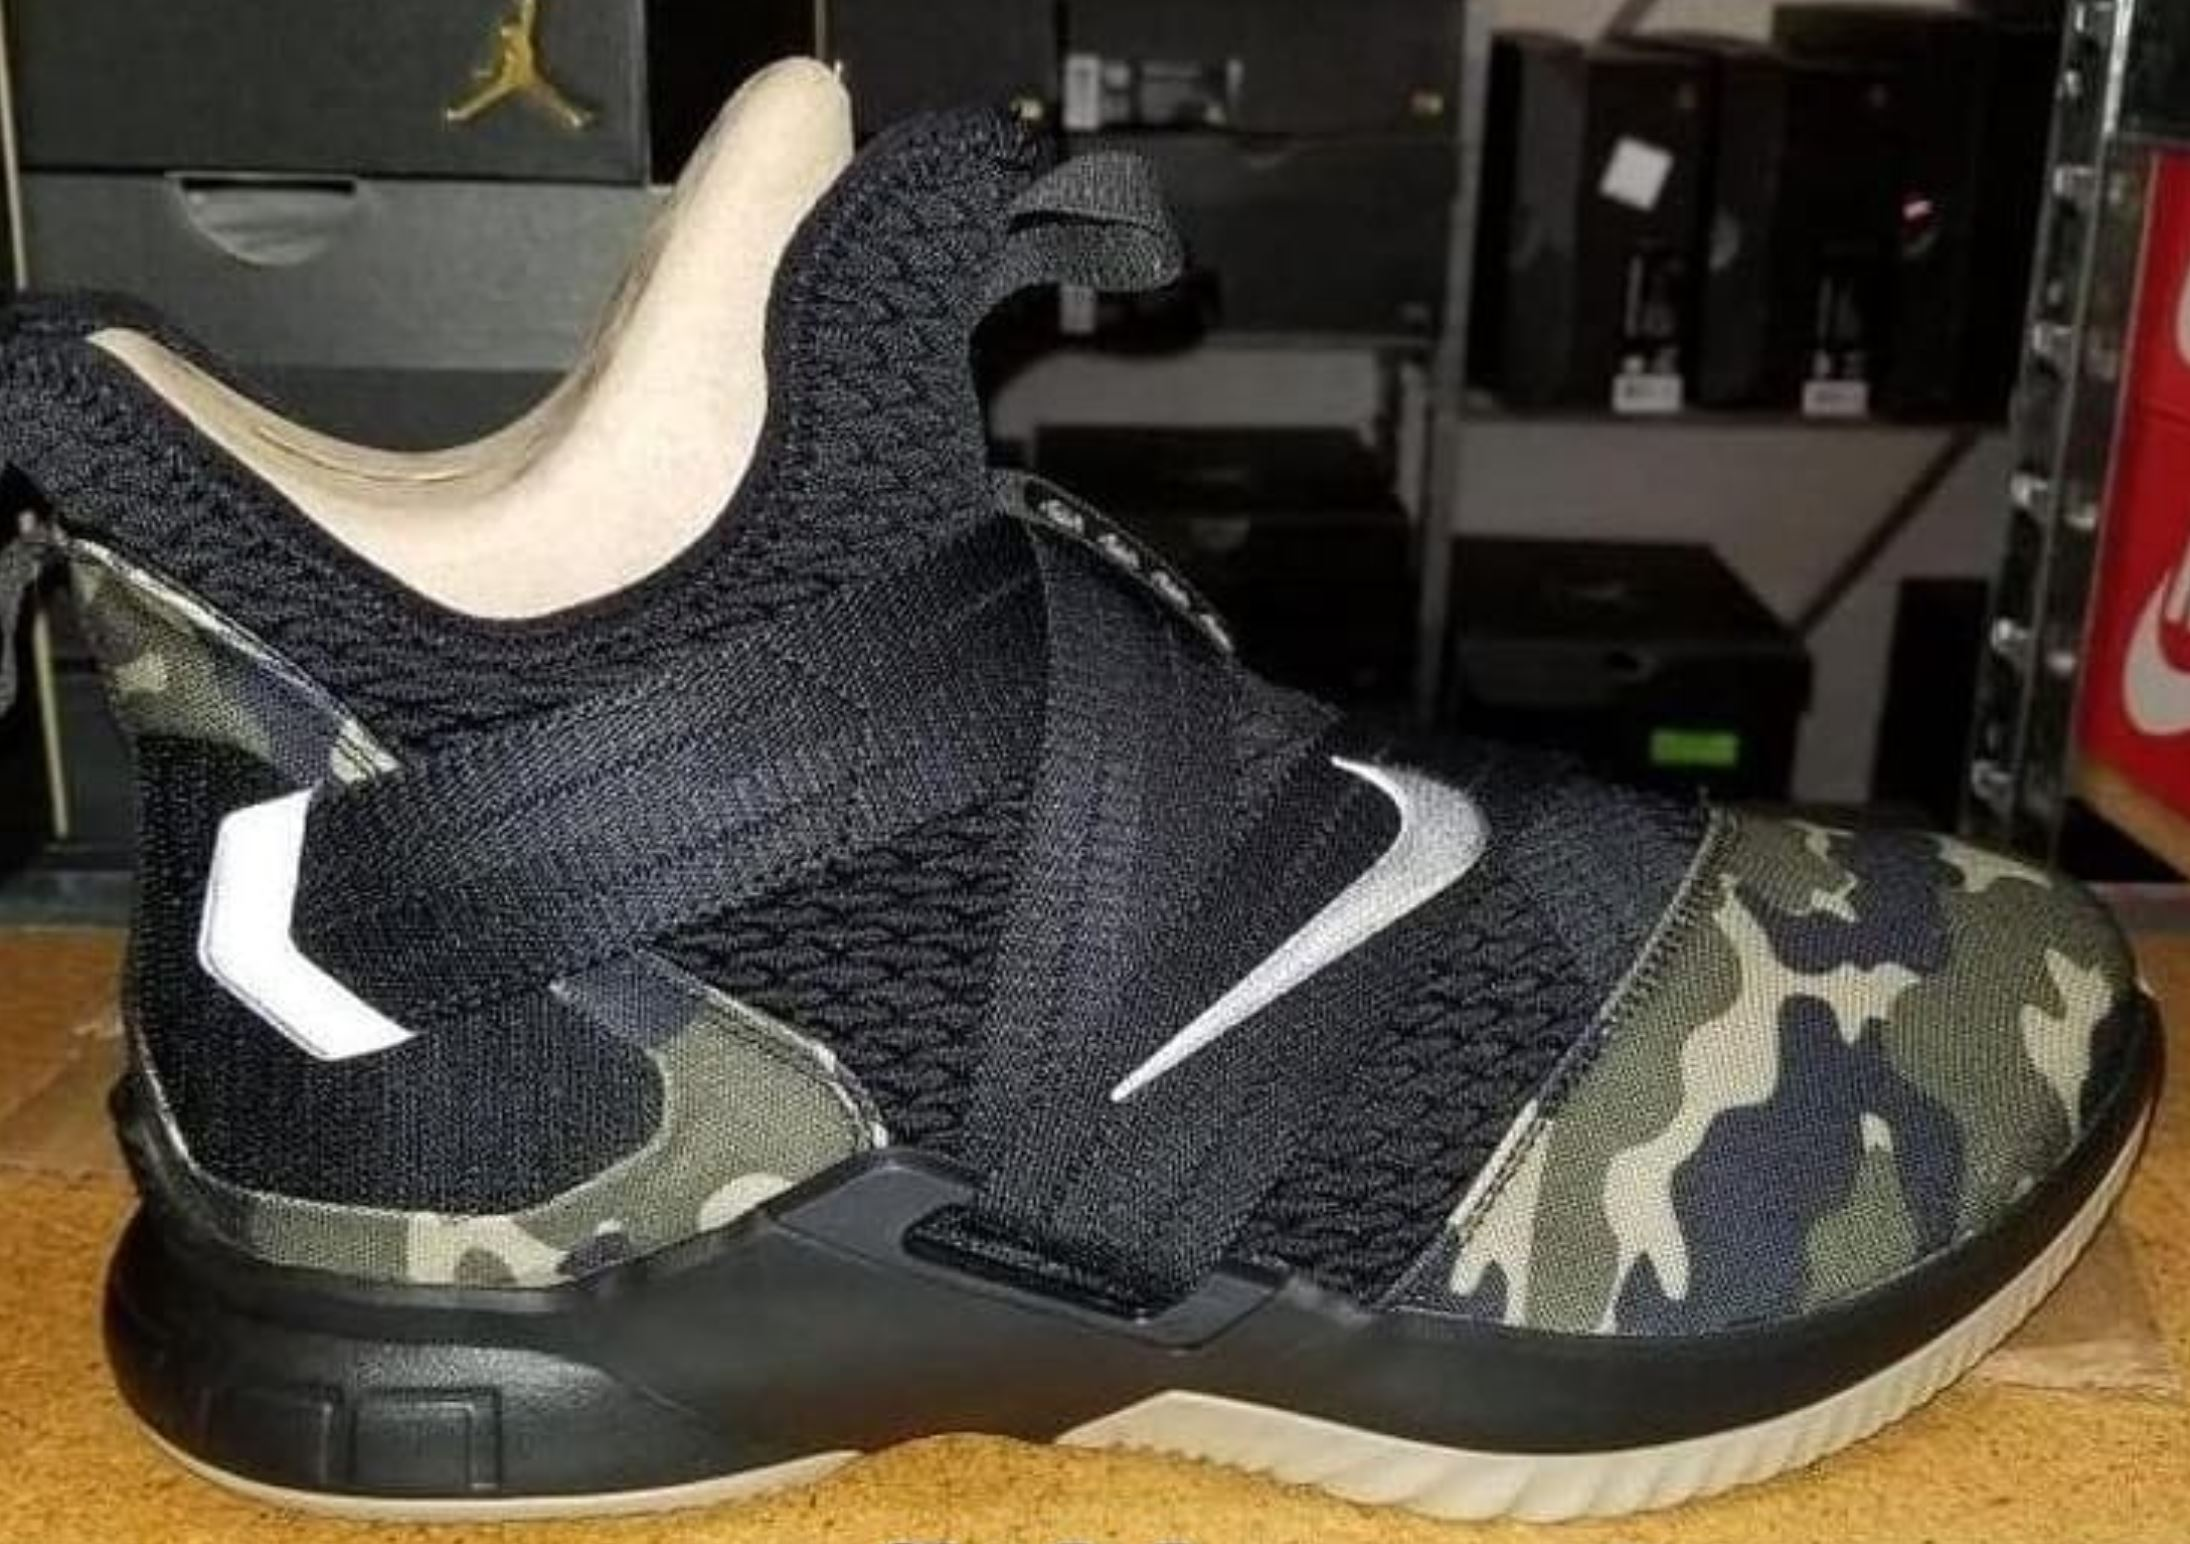 Lebron Soldier  Ep Basketball Shoes